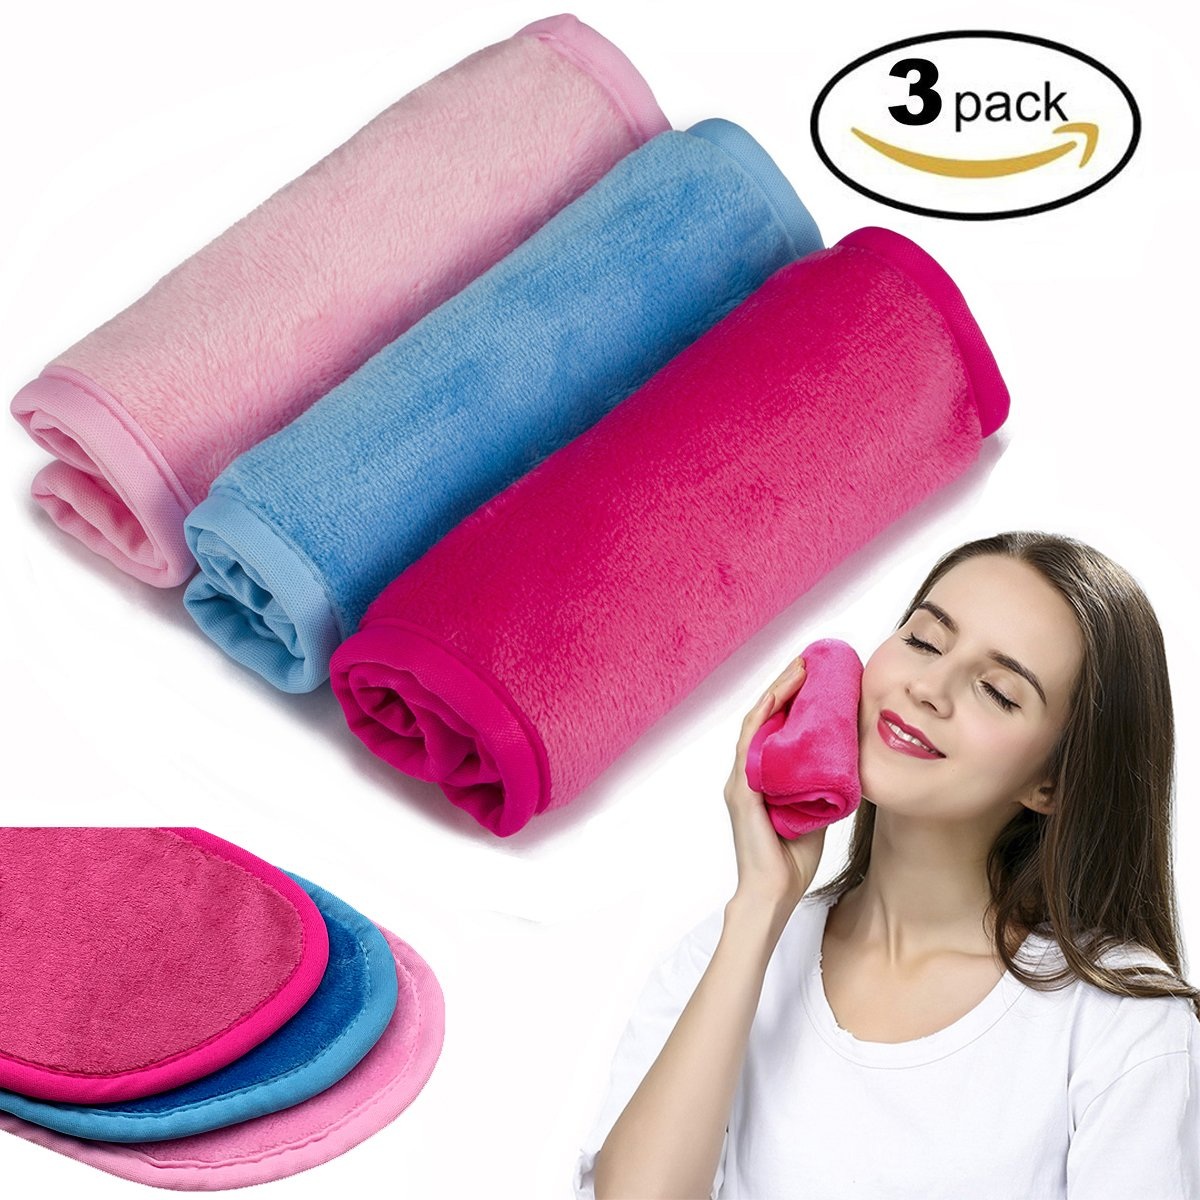 Makeup Remover Cloth 3 Pack - Chemical Free, Move Makeup Instantly with Just Water, Reusable Facial Cleansing Towel, Satisfaction Guaranty (1Pink+1Blue+1Rosy)